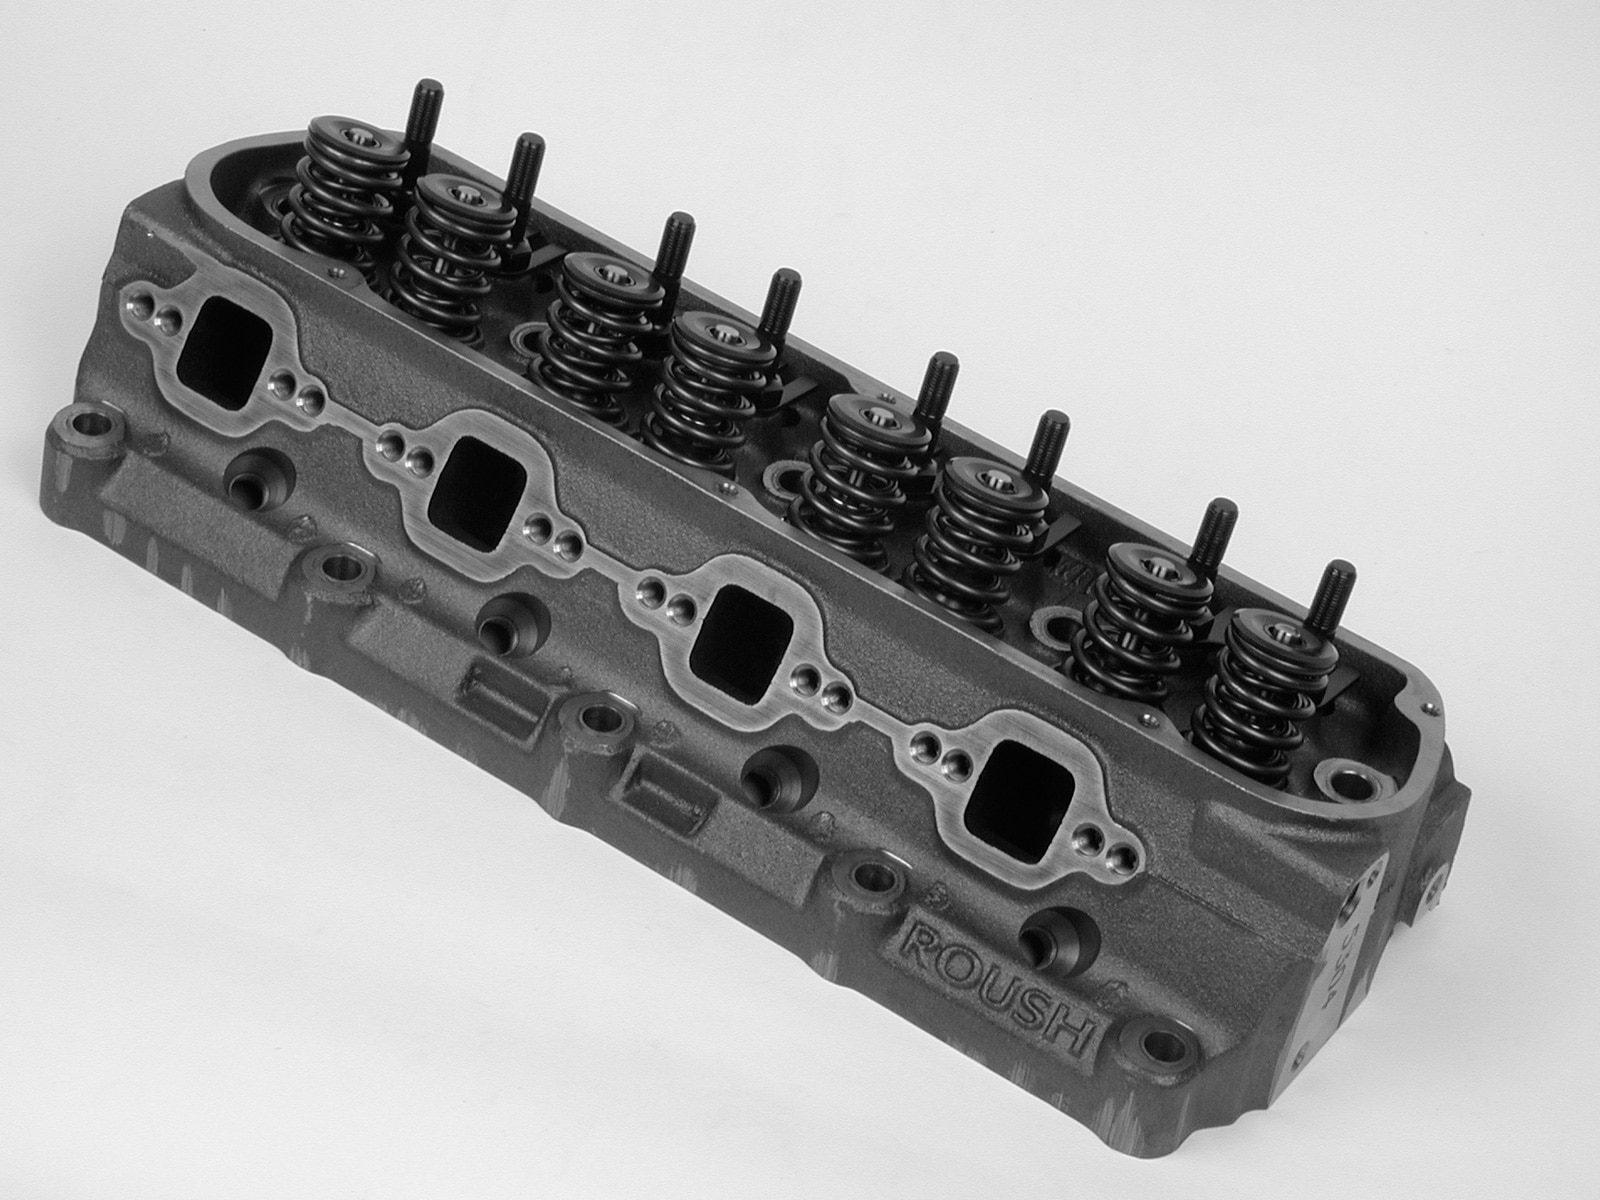 M5lp 0205 01  High Performance Cylinder Heads Roush Mustang Crate Engine